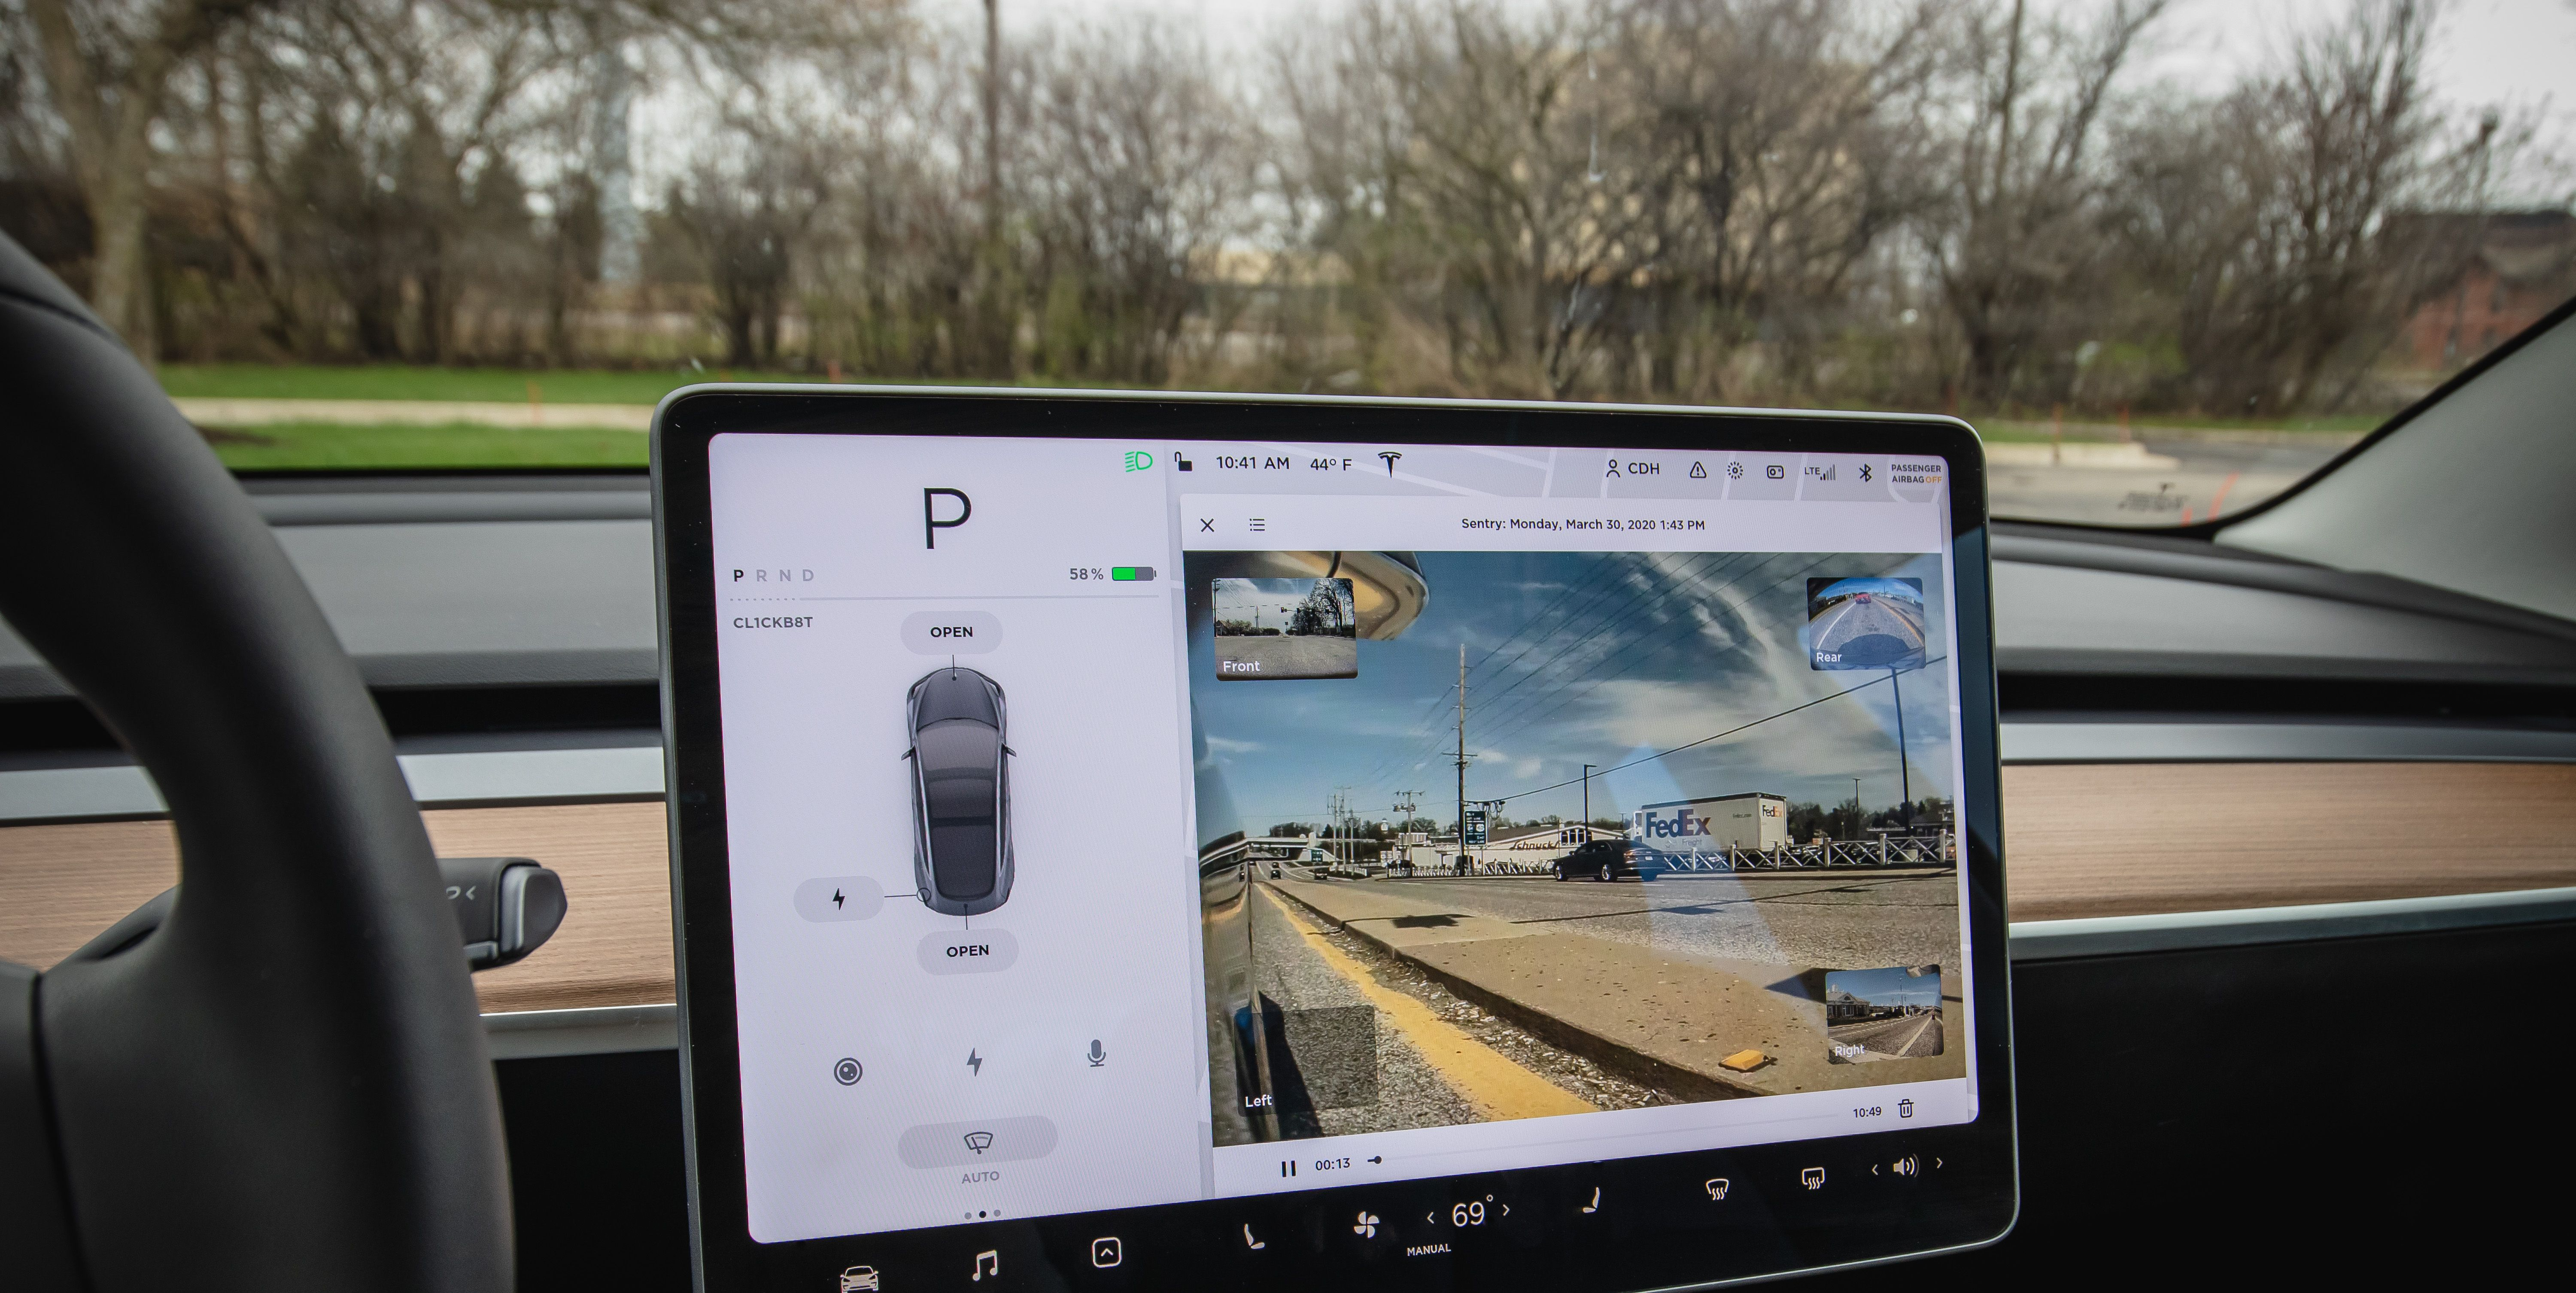 Now You Can View Tesla Model 3 Past Dashcam Footage on Its Screen